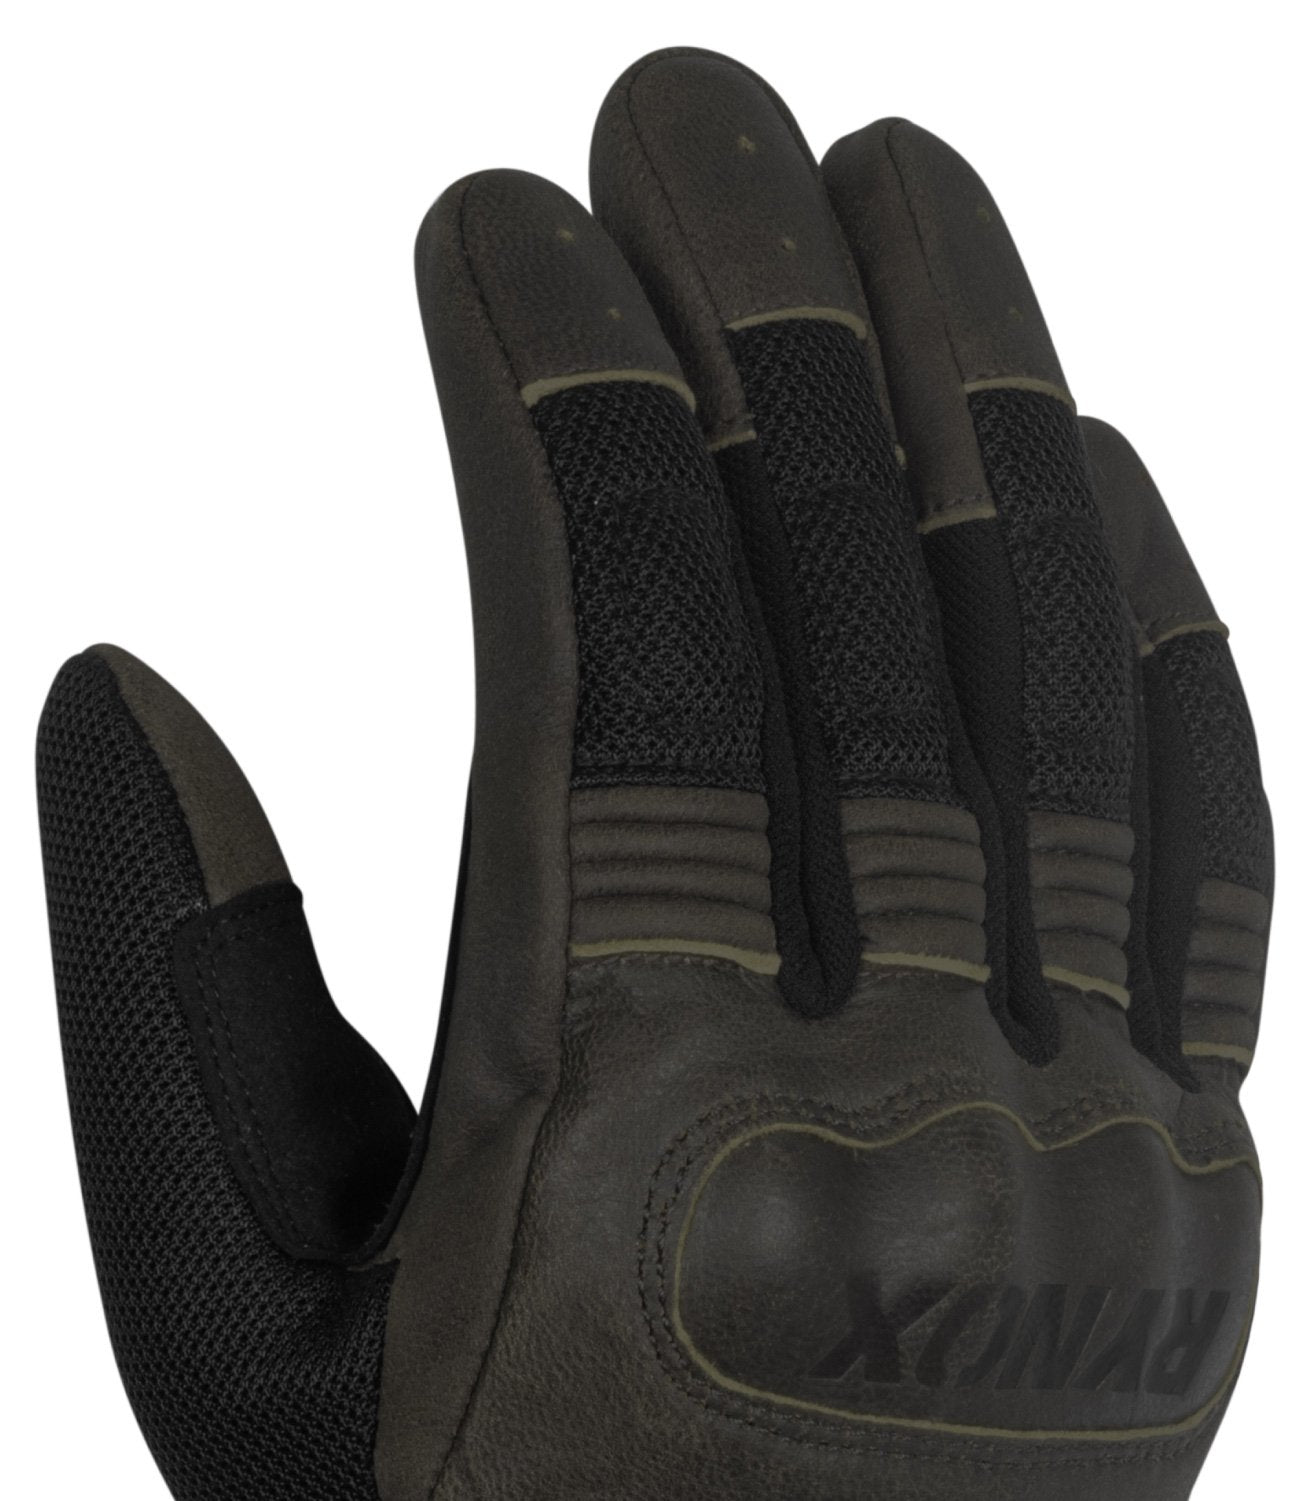 Rynox Urban Gloves Copper 5